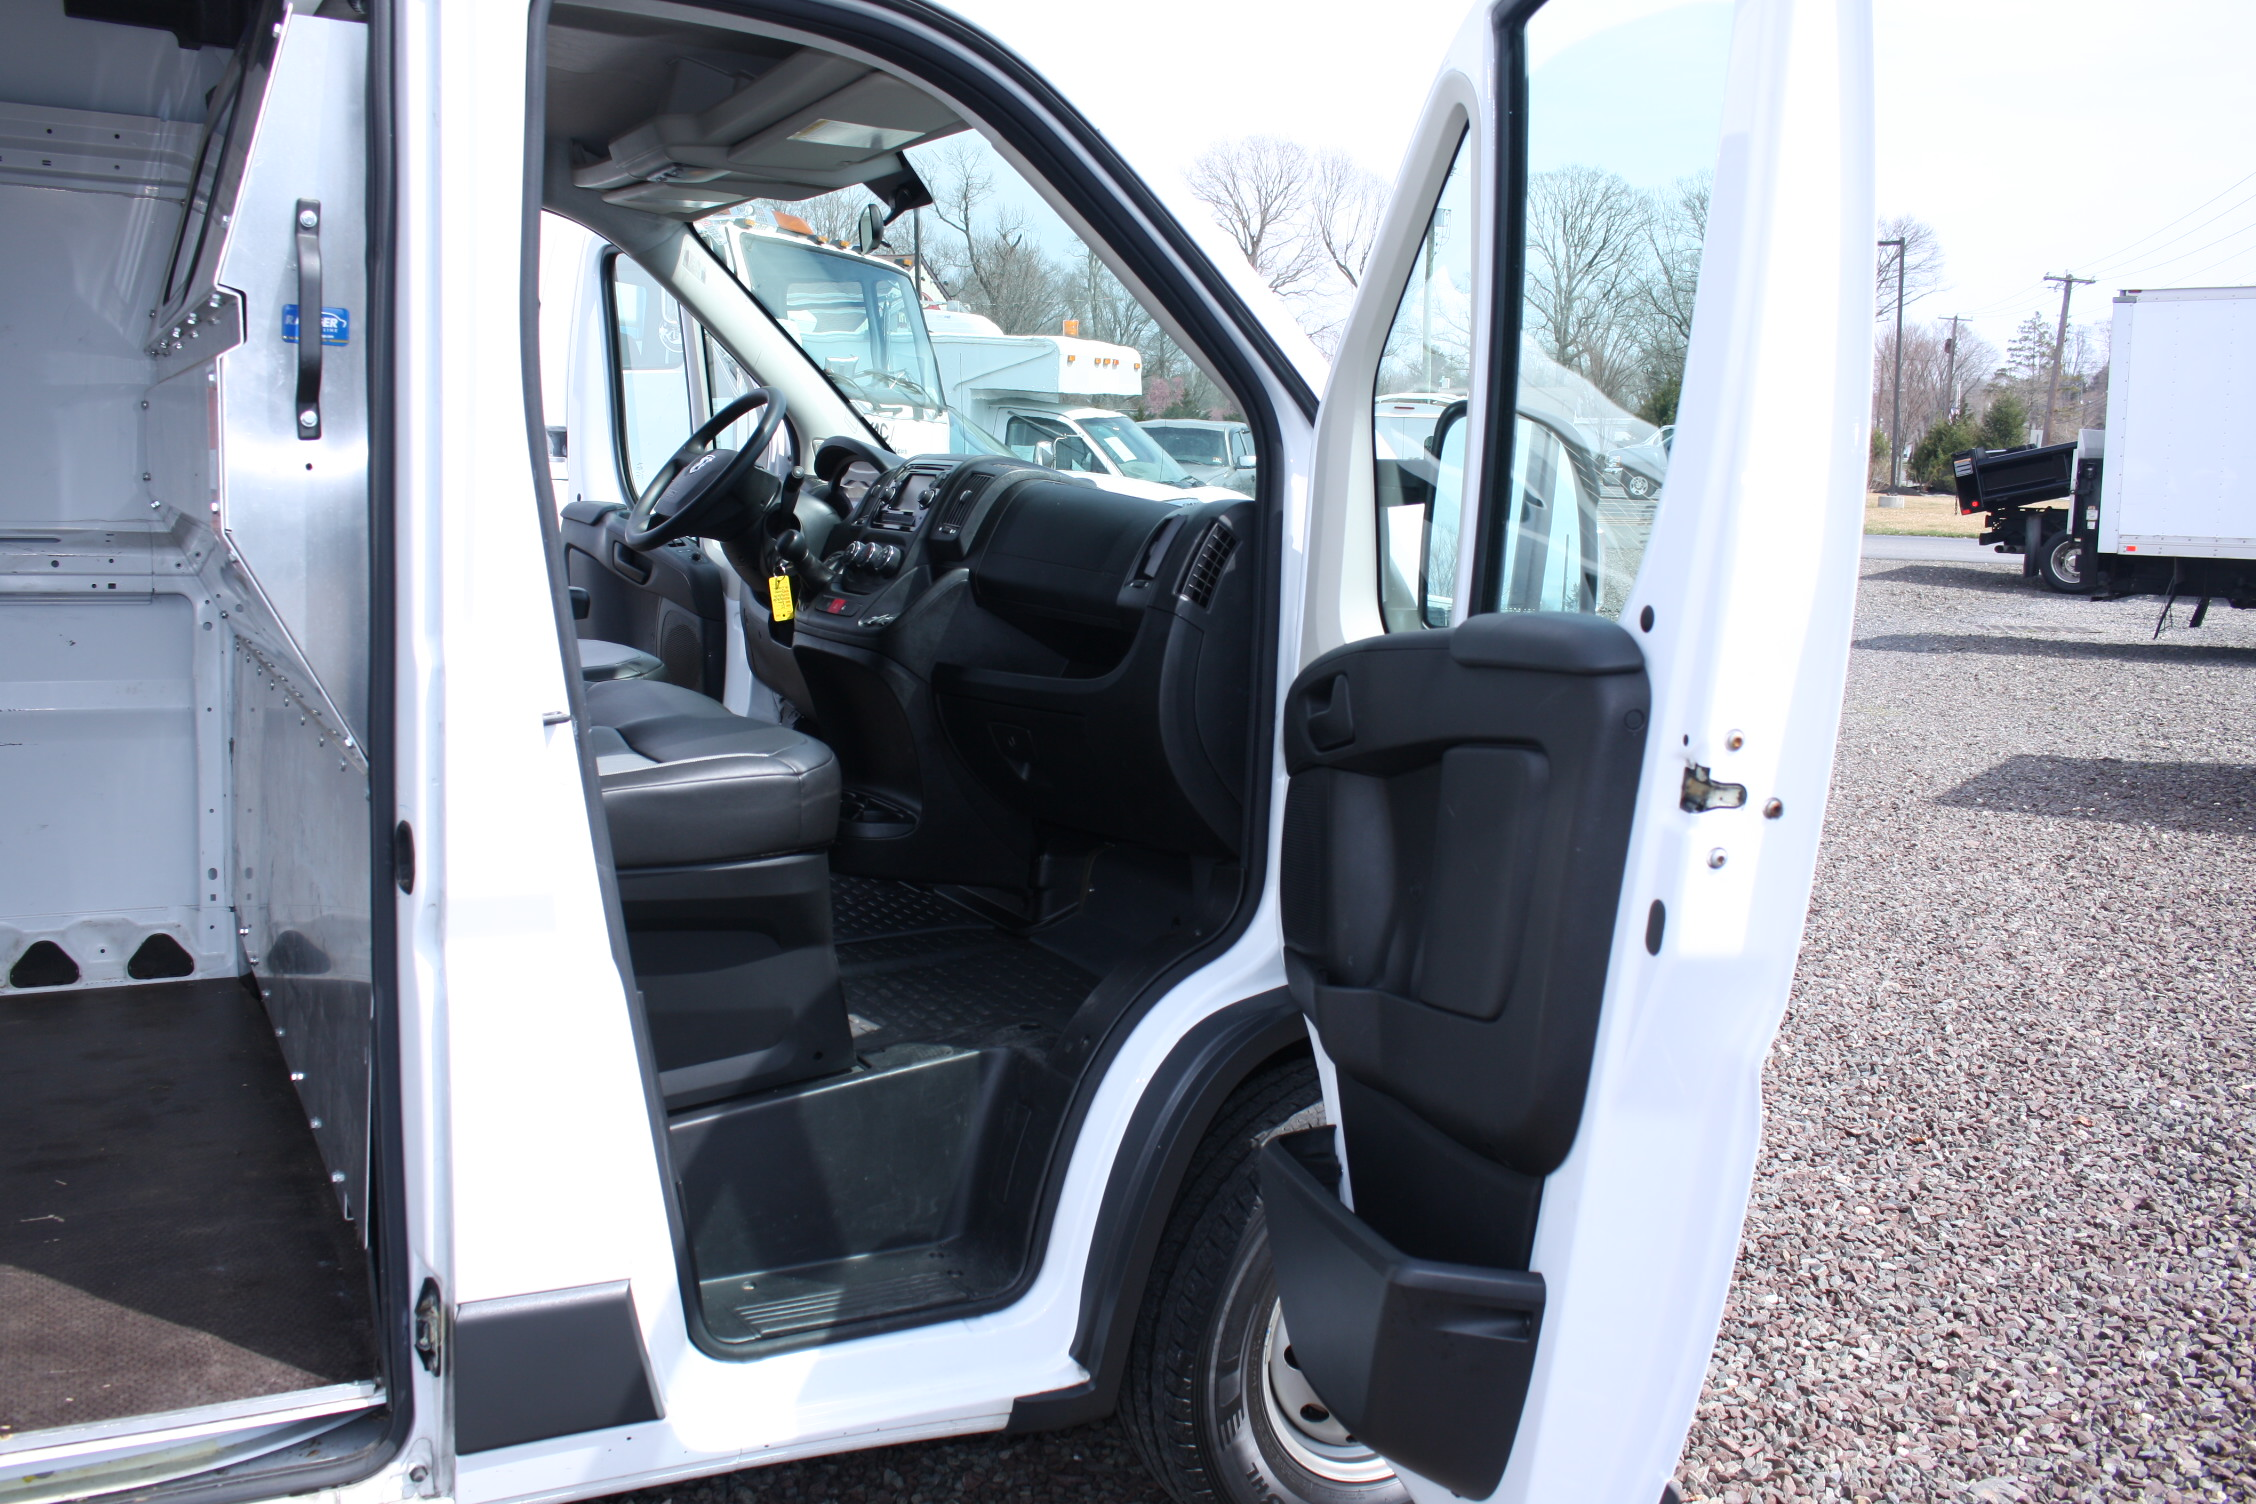 IMG 3071 - 2015 RAM PROMASTER 3500 HIGH ROOF VAN WITH ECODIESEL